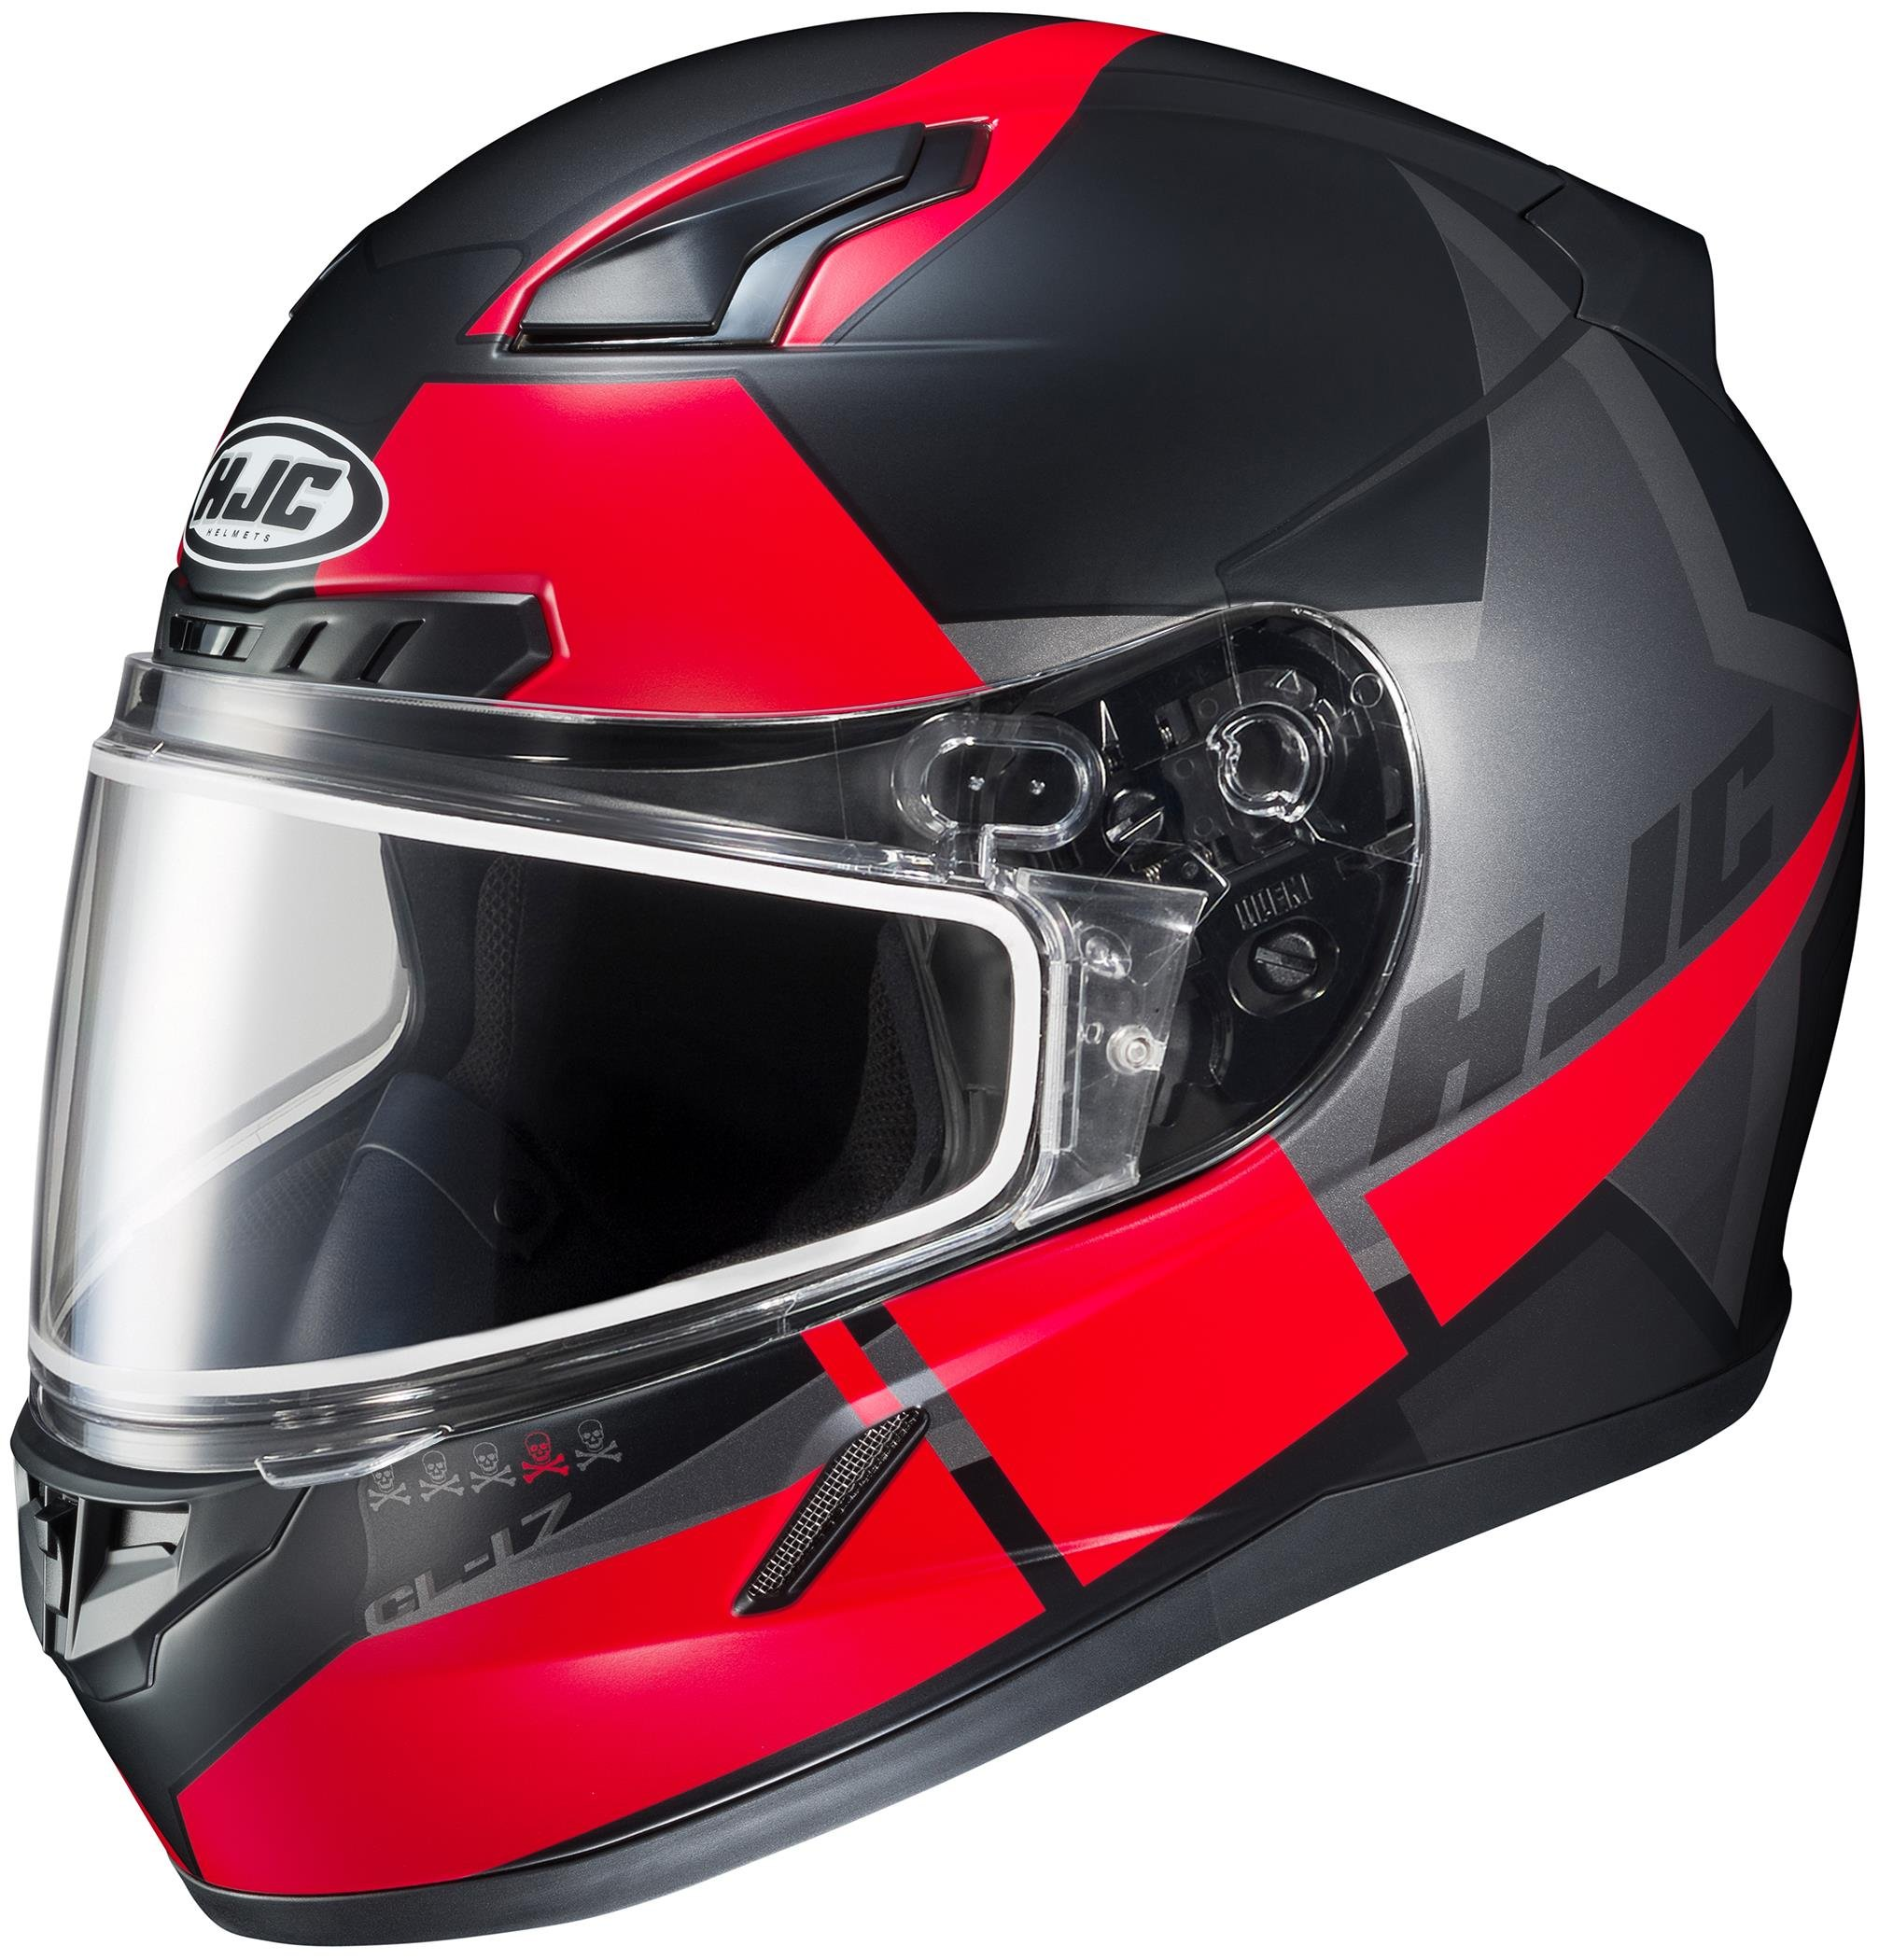 HJC CL-17 Boost Snow Helmet with Electric Shield (MC-1SF, Large) XF-10-1251-2531-06